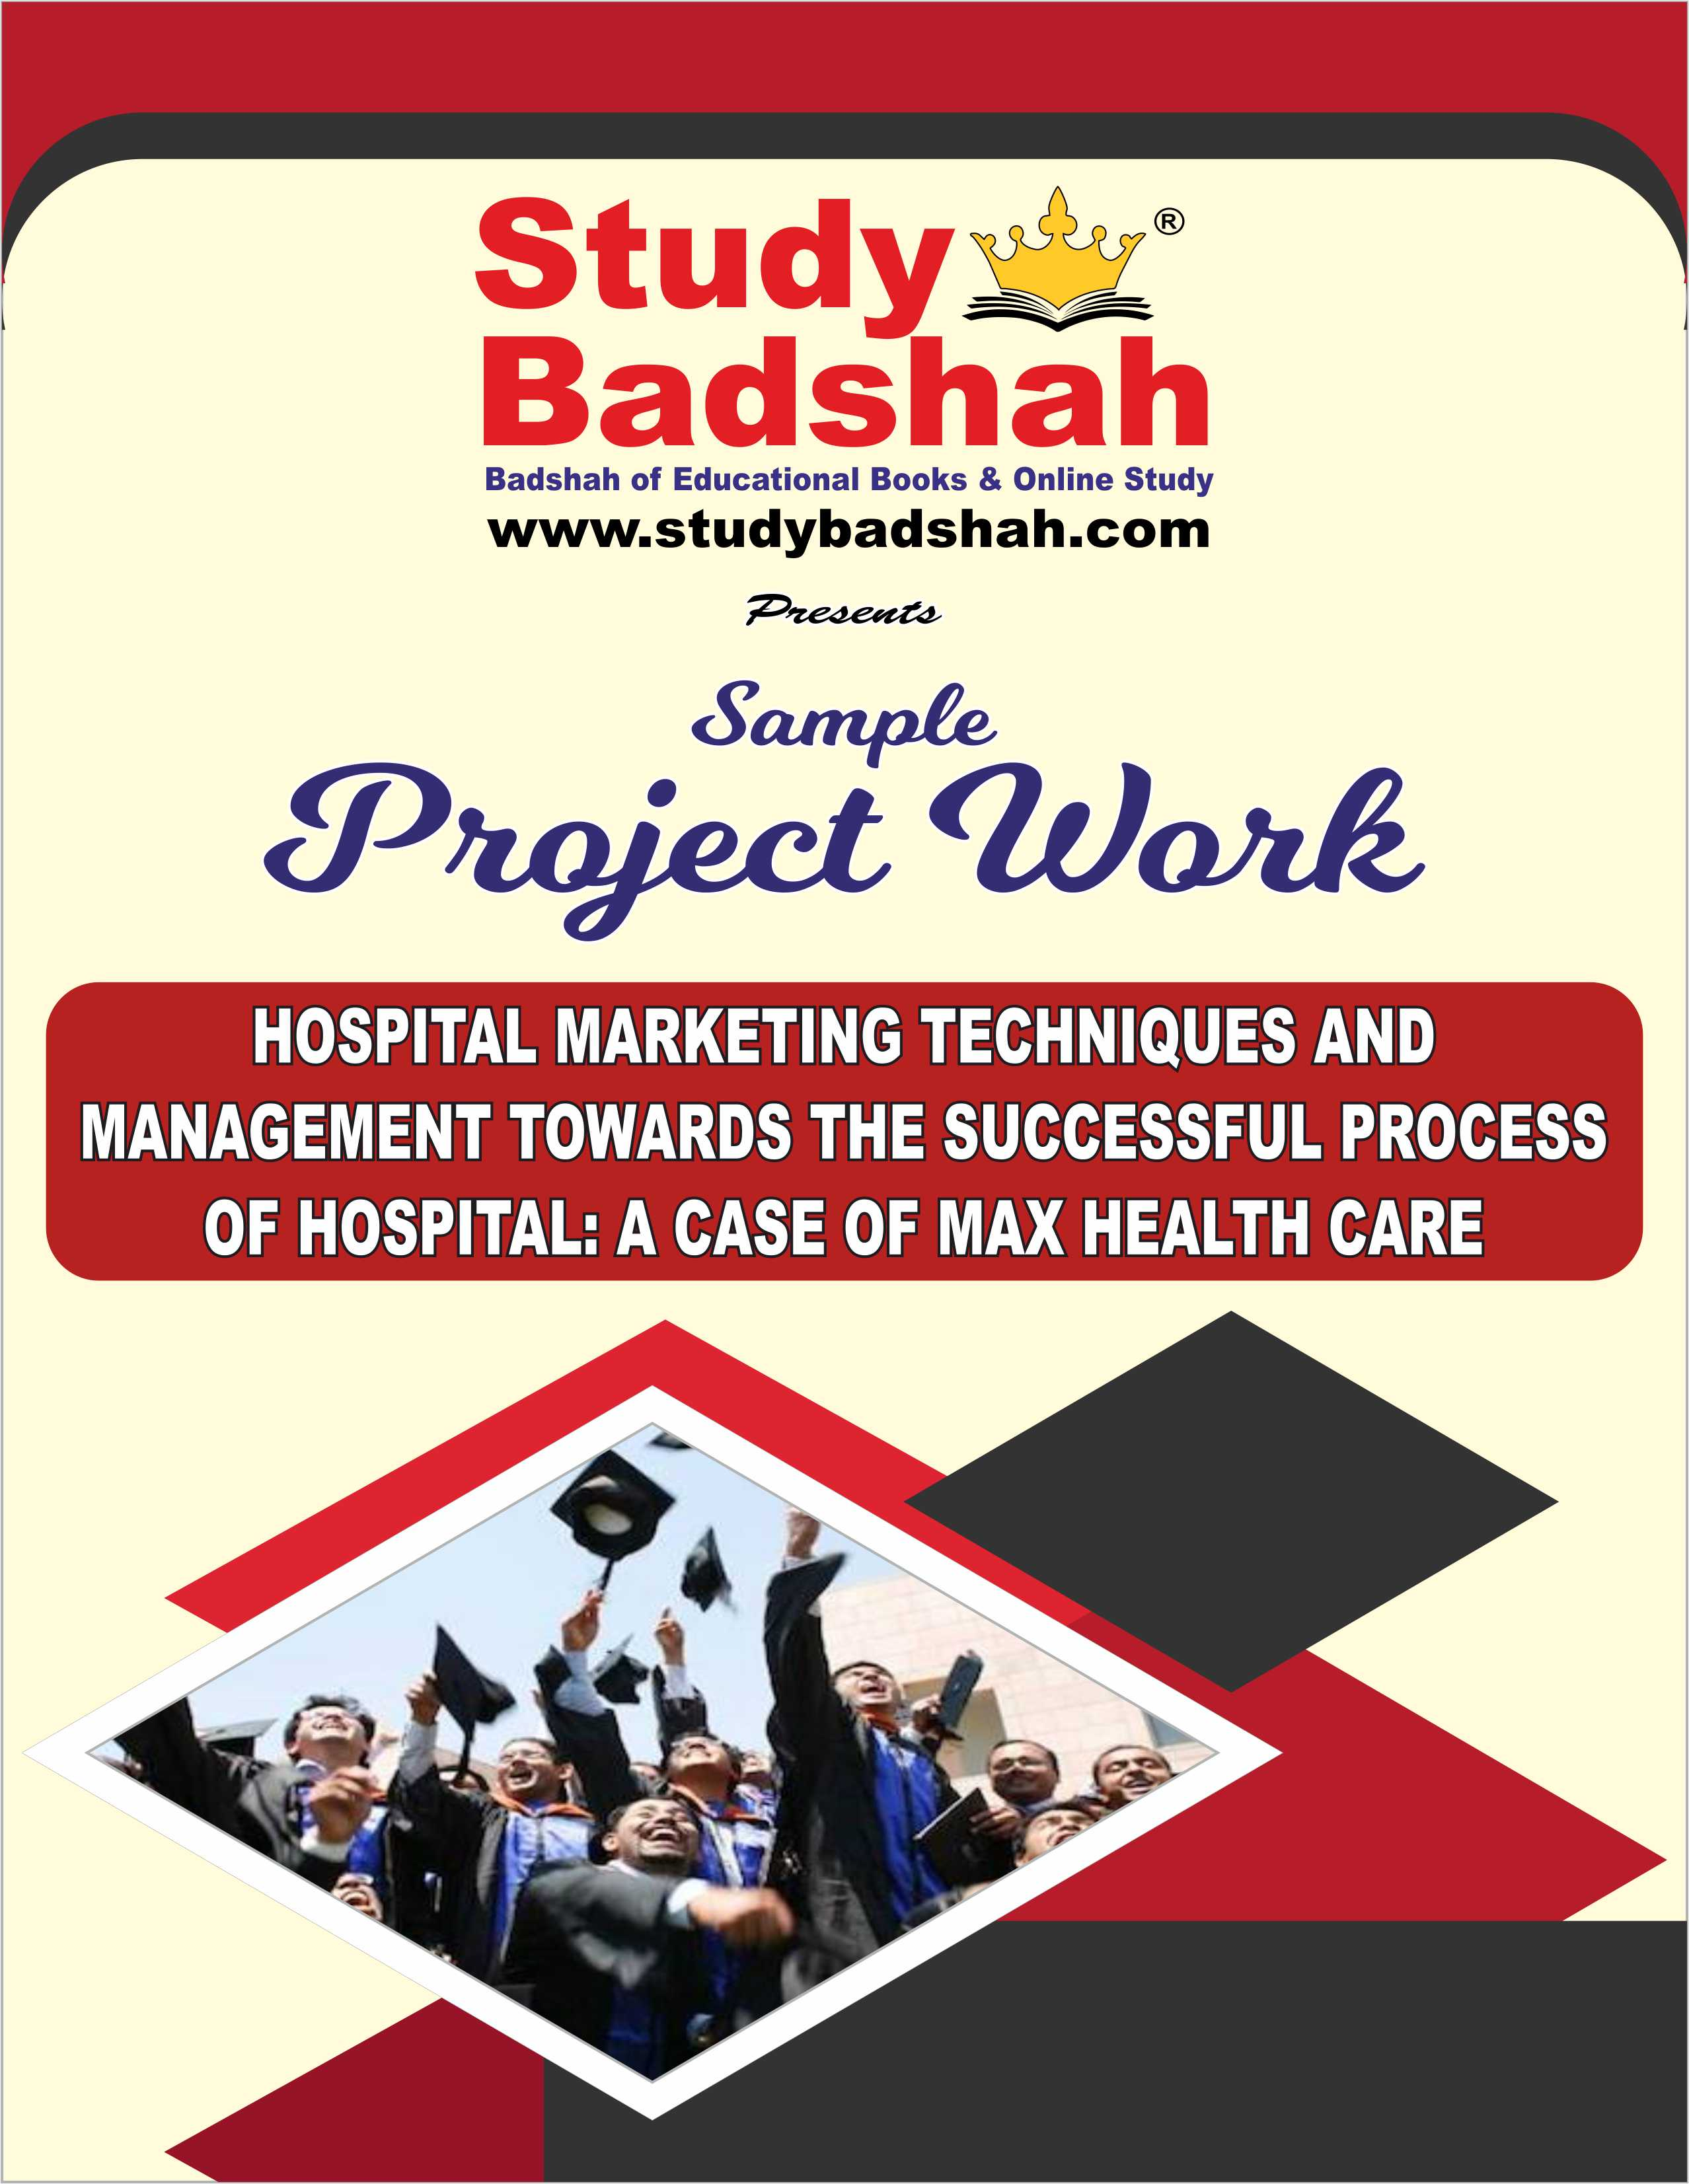 HOSPITAL MARKETING TECHNIQUES AND MANAGEMENT TOWARDS THE SUCCESSFUL PROCESS OF HOSPITAL A CASE OF MAX HEALTH CARE